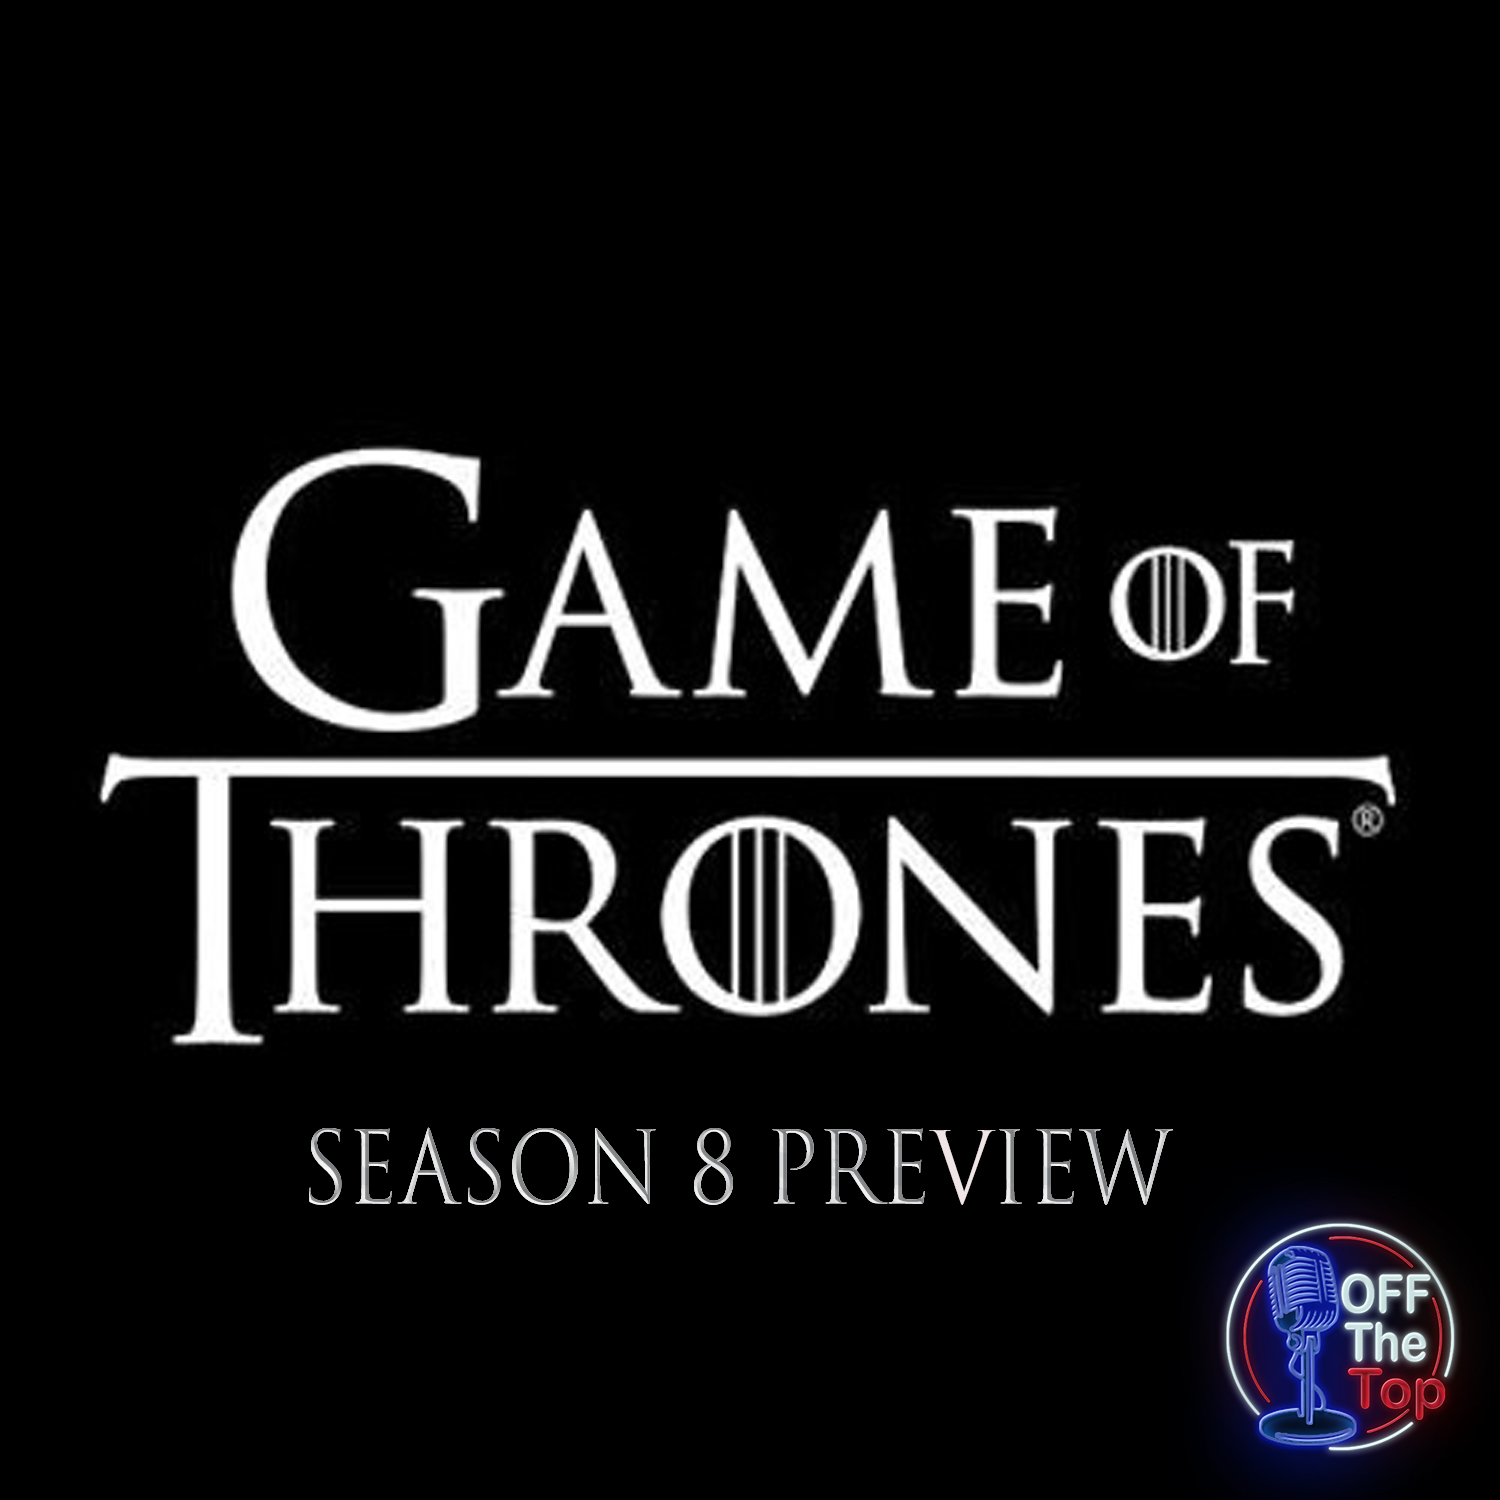 Game Of Thrones Season 8 Theories & Preview